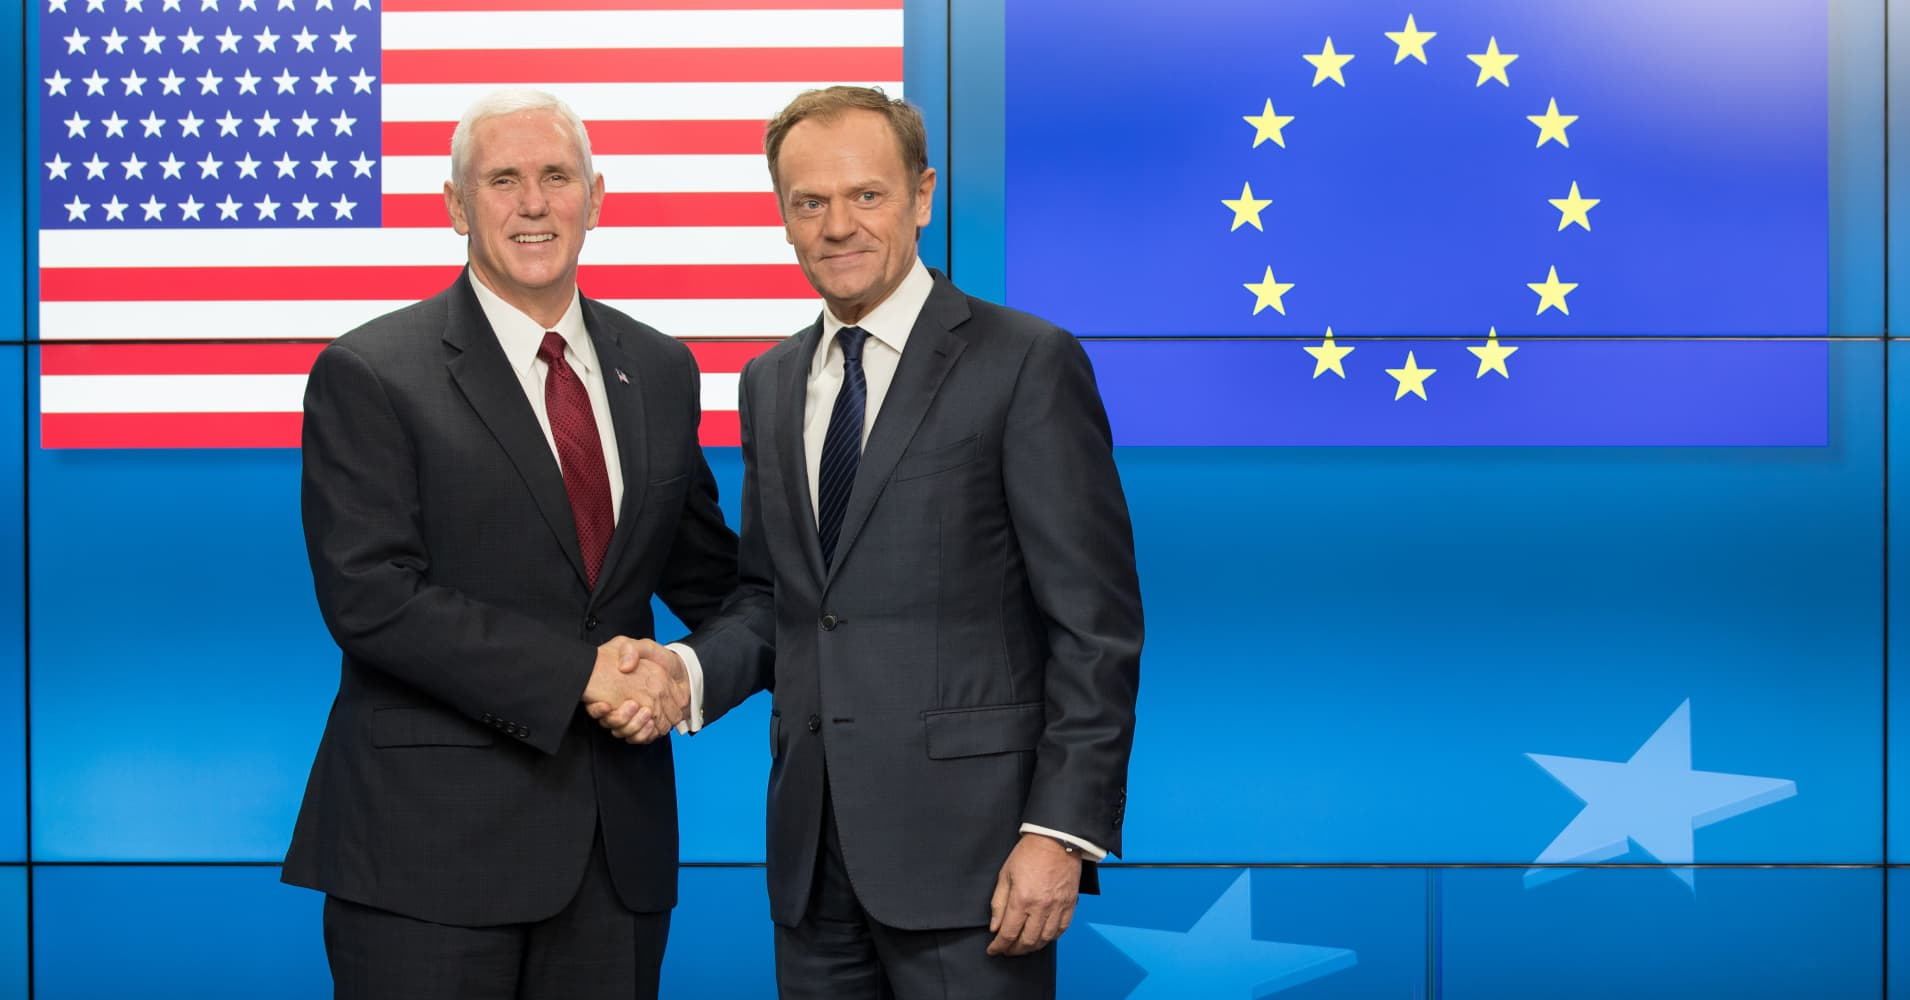 Trump support for EU is strong, says US vice president